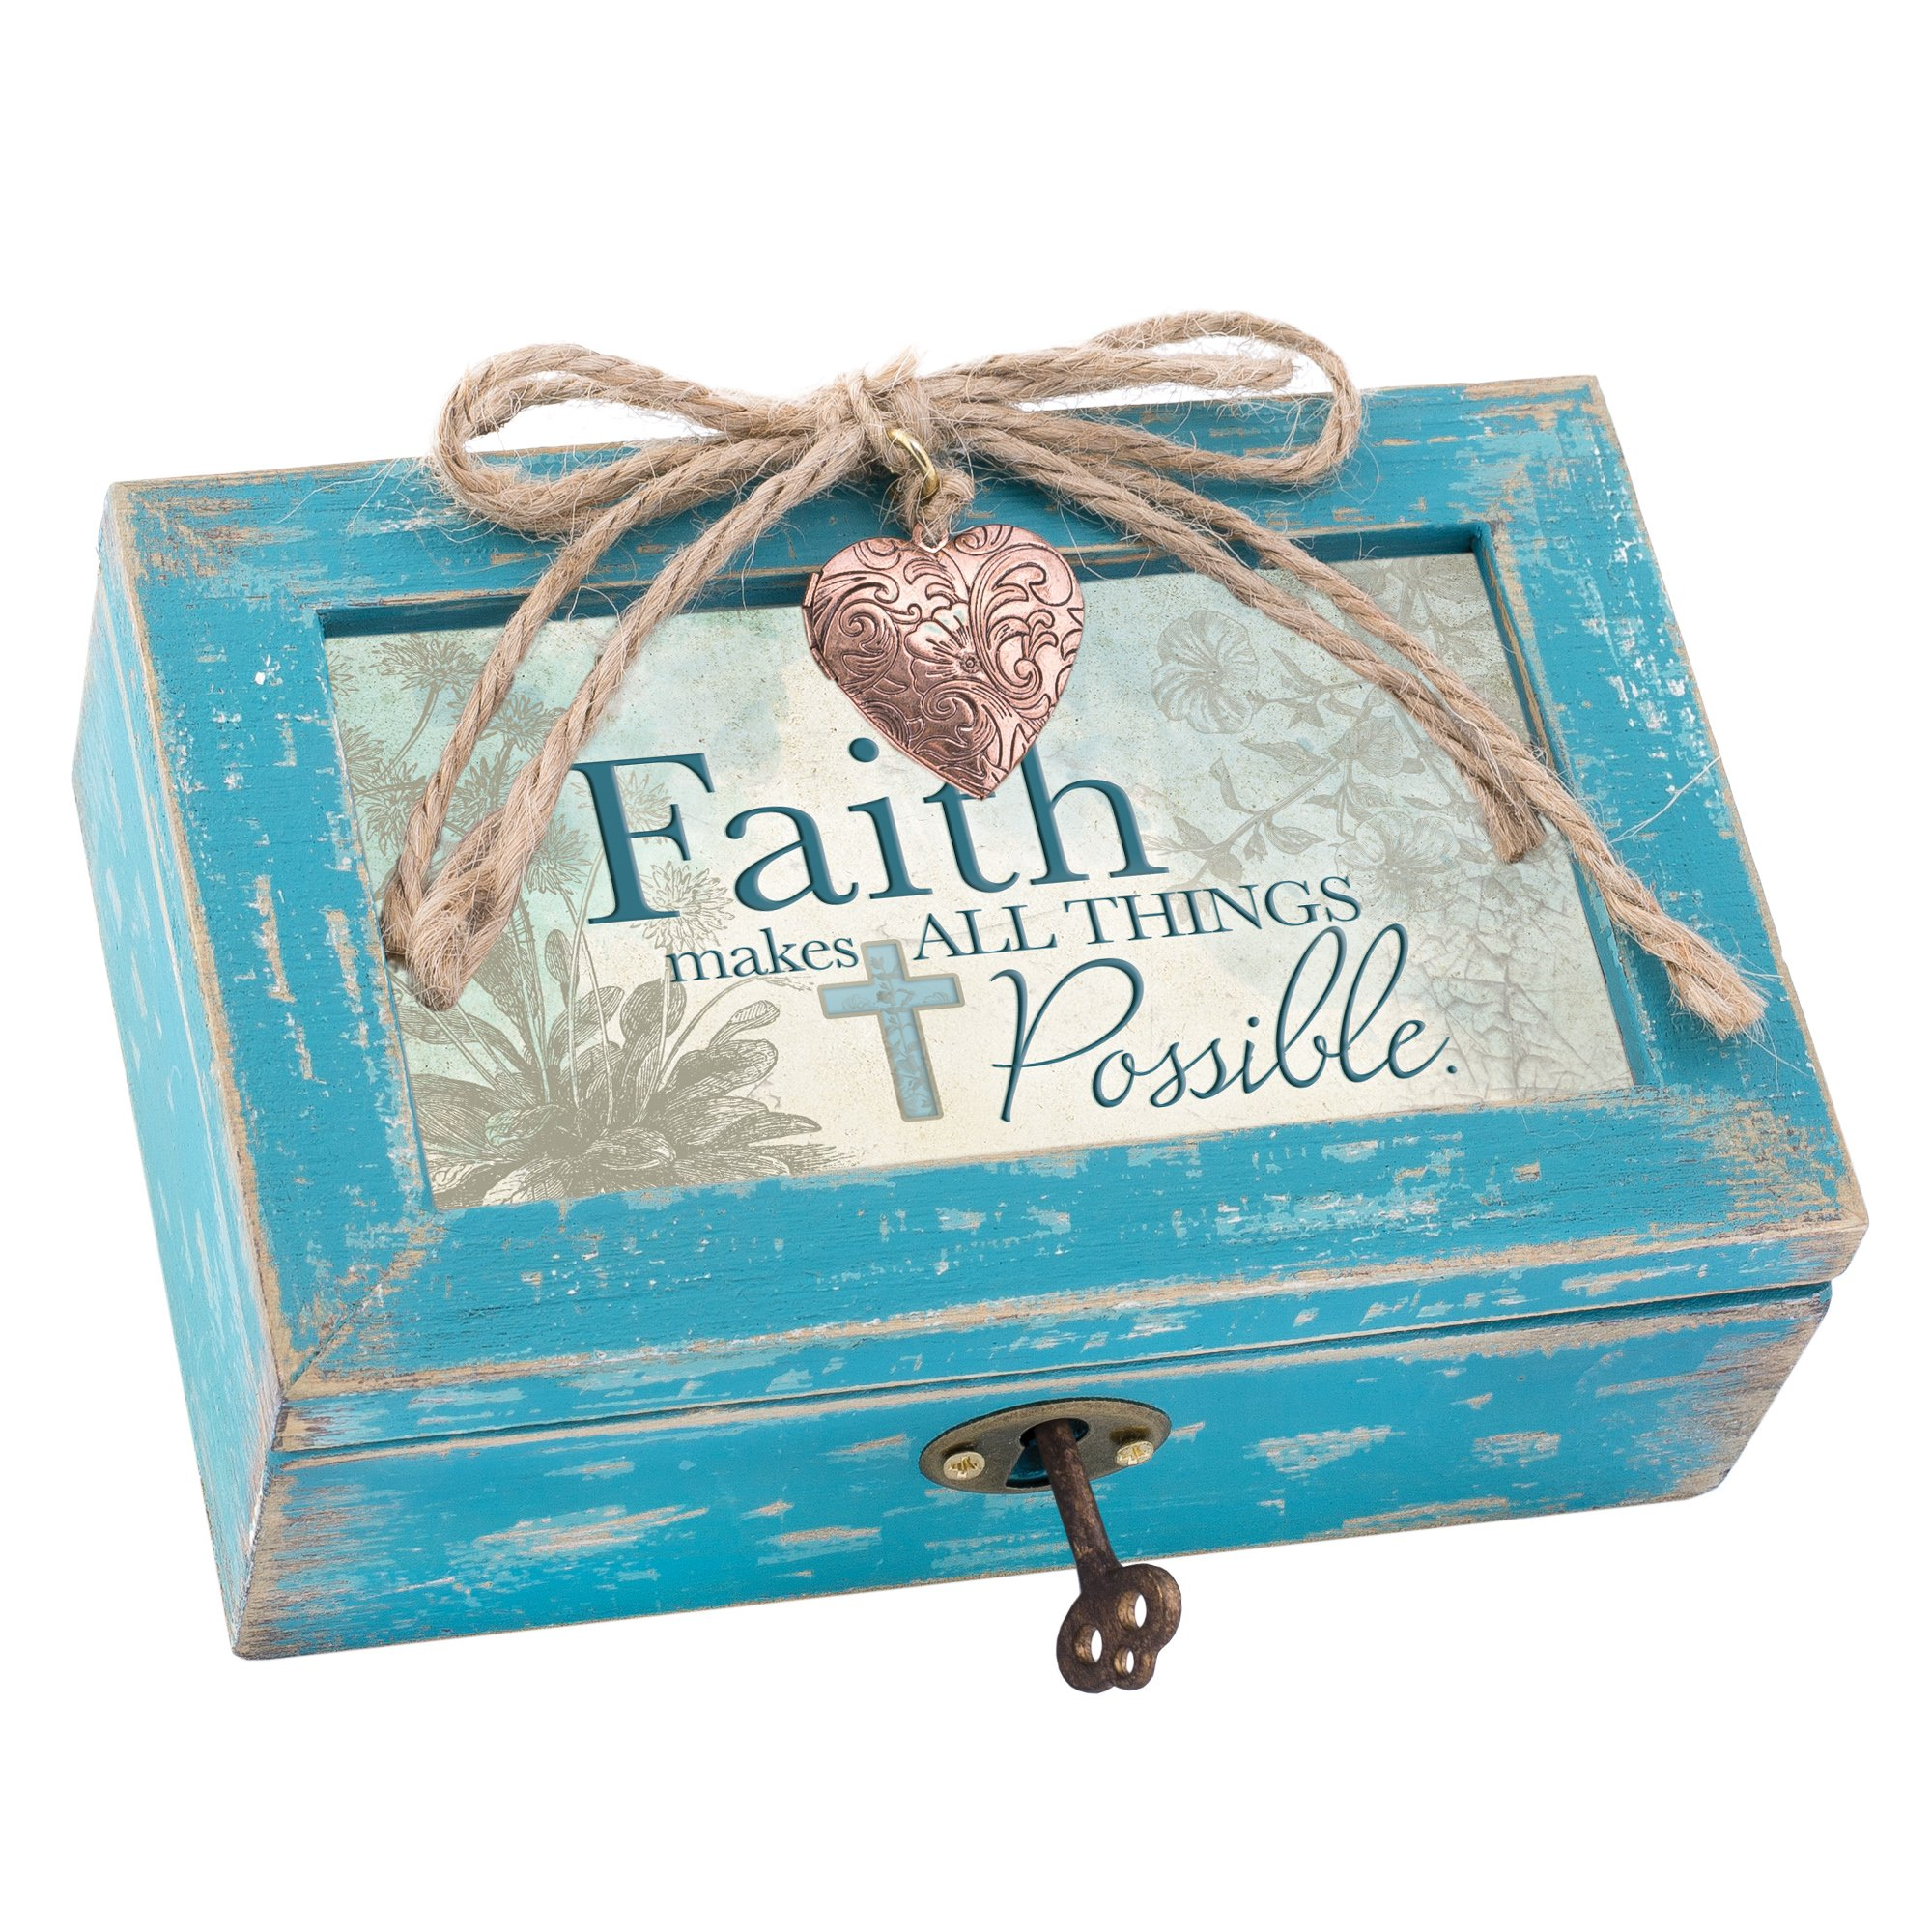 Cottage Garden Faith Makes All Things Possible Teal Wood Locket Jewelry Music Box Plays Tune Amazing Grace